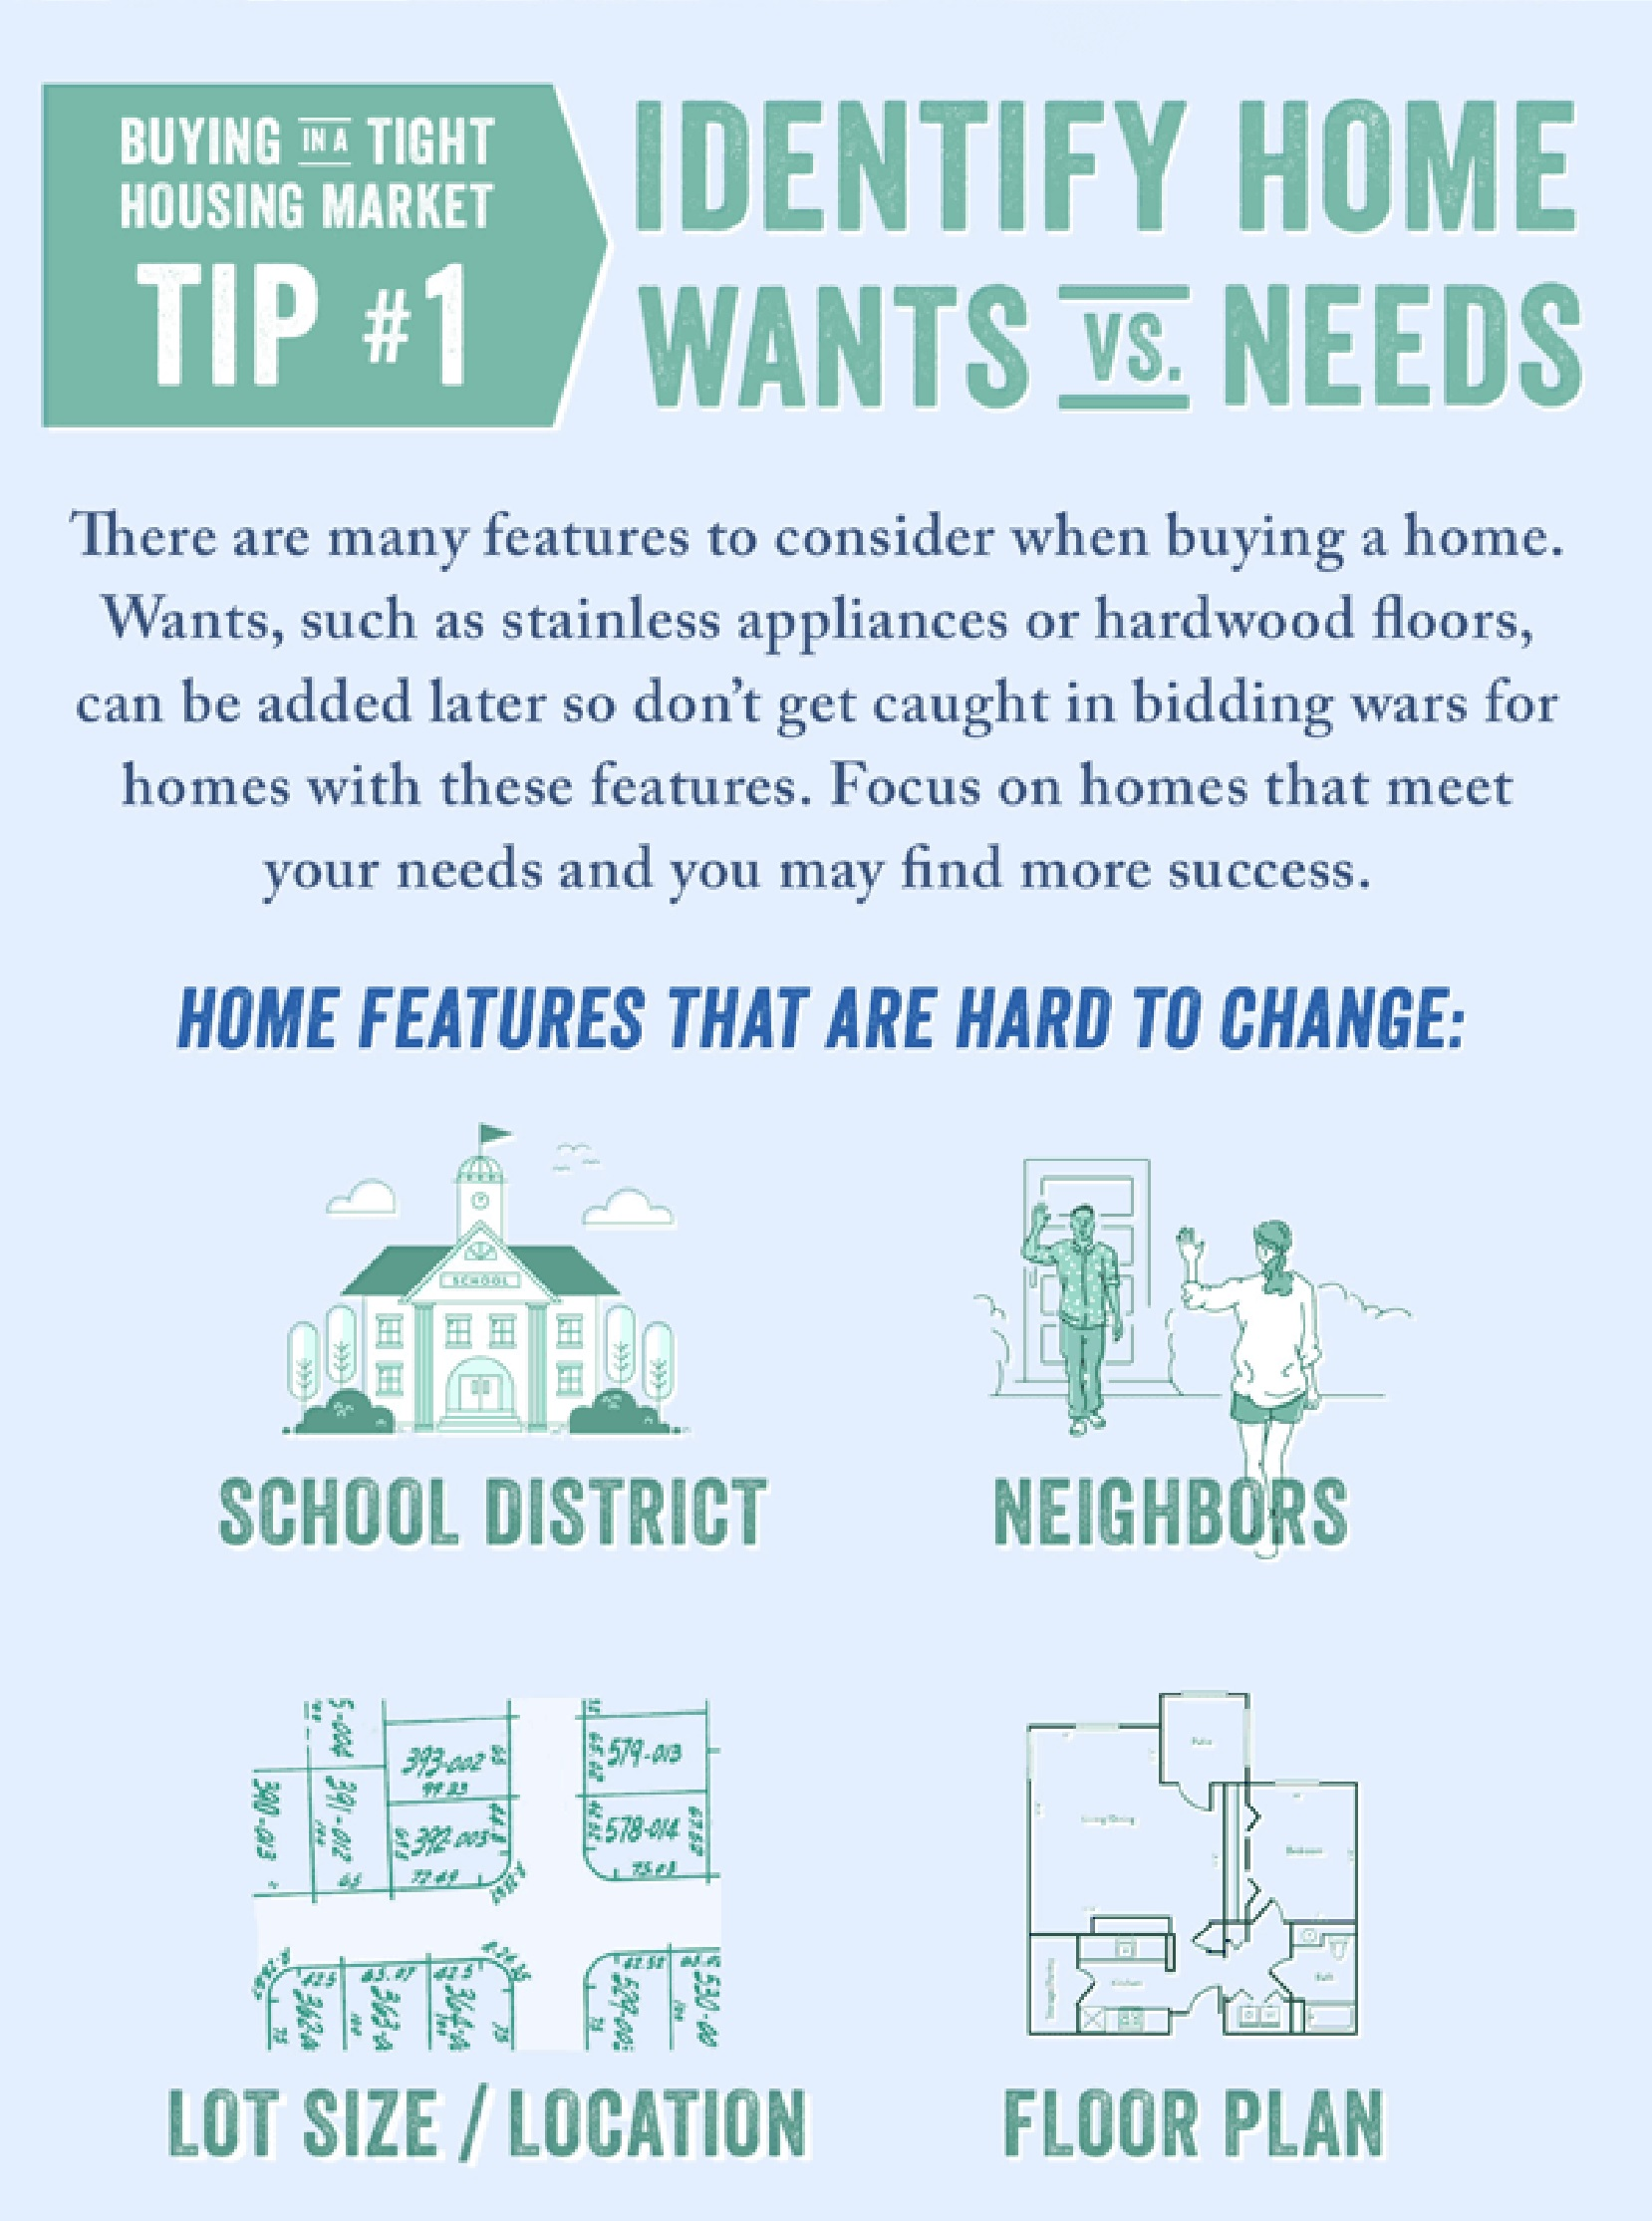 Buyer Tips in Tight Market #1 | RH2L on home inspections, debt management tips, home design tips, home statistics, home cleaning tips, home sellers guide, selling tips, price your home, house hunting tips, owning your home, selling your home, savings tips, how to create a good home ad, home depot patio paver stones, home renting tips, insurance tips, home organizing tips, home management tips, home showing tips, house flipping tips, home selling tips, home inspection tips, home remodeling tips, home tiny house, cool products for your home, home care tips, identity theft tips, personal finance tips, tips & articles,